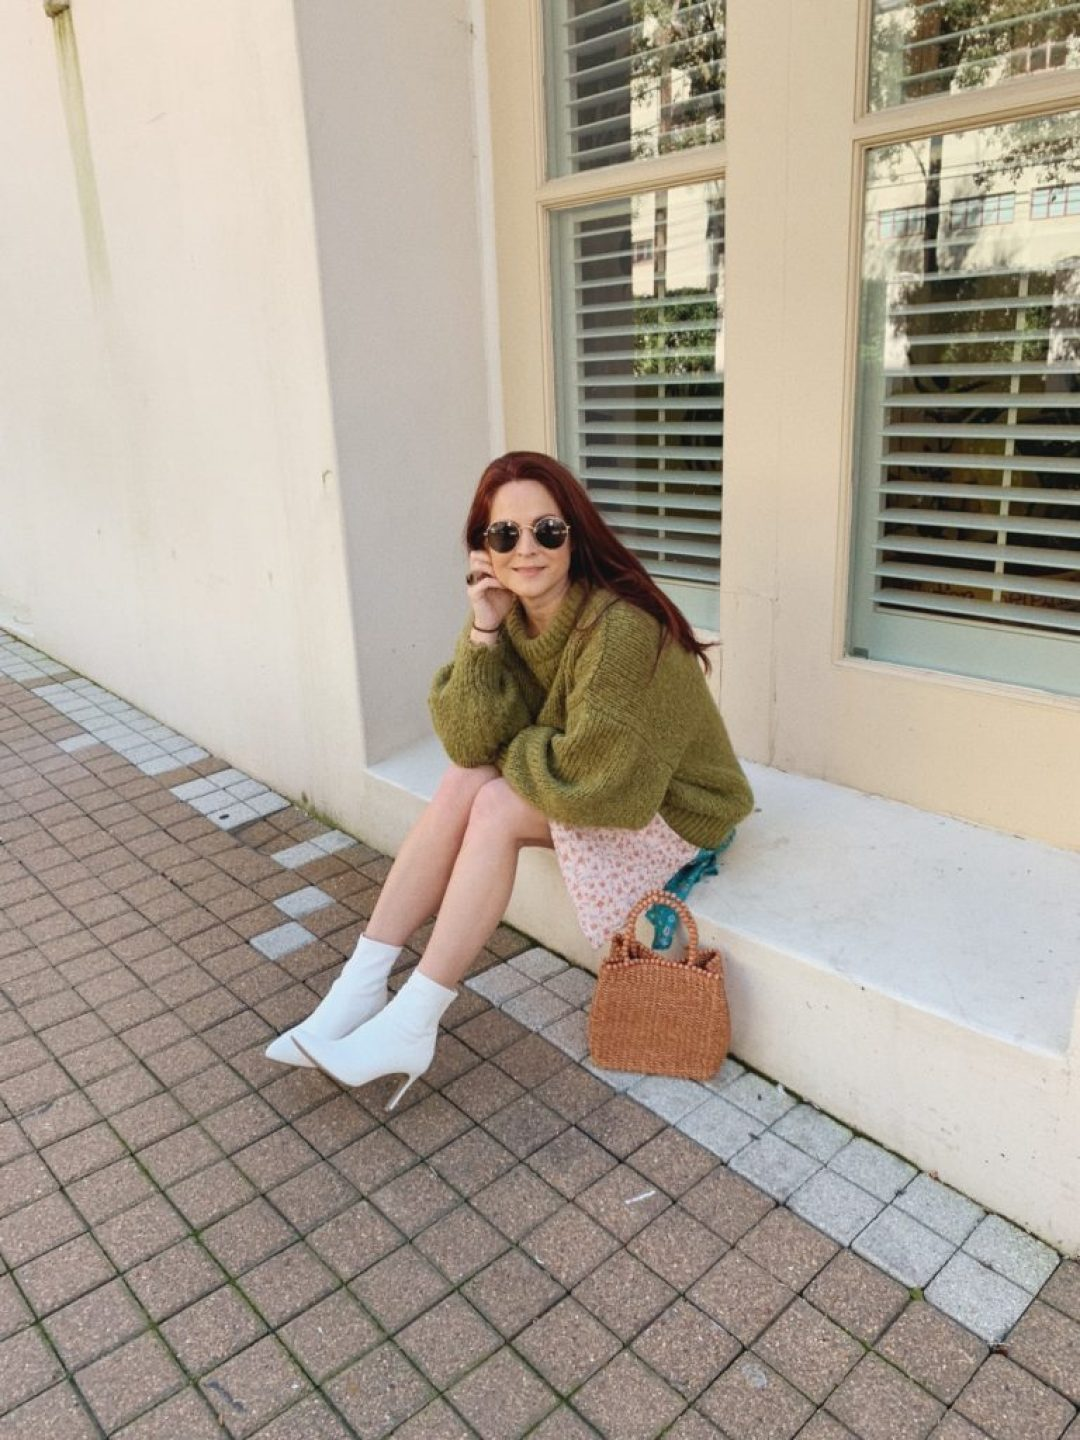 white boot outfit ideas, comfortable spring looks, spring dresses, how to style oversized sweaters